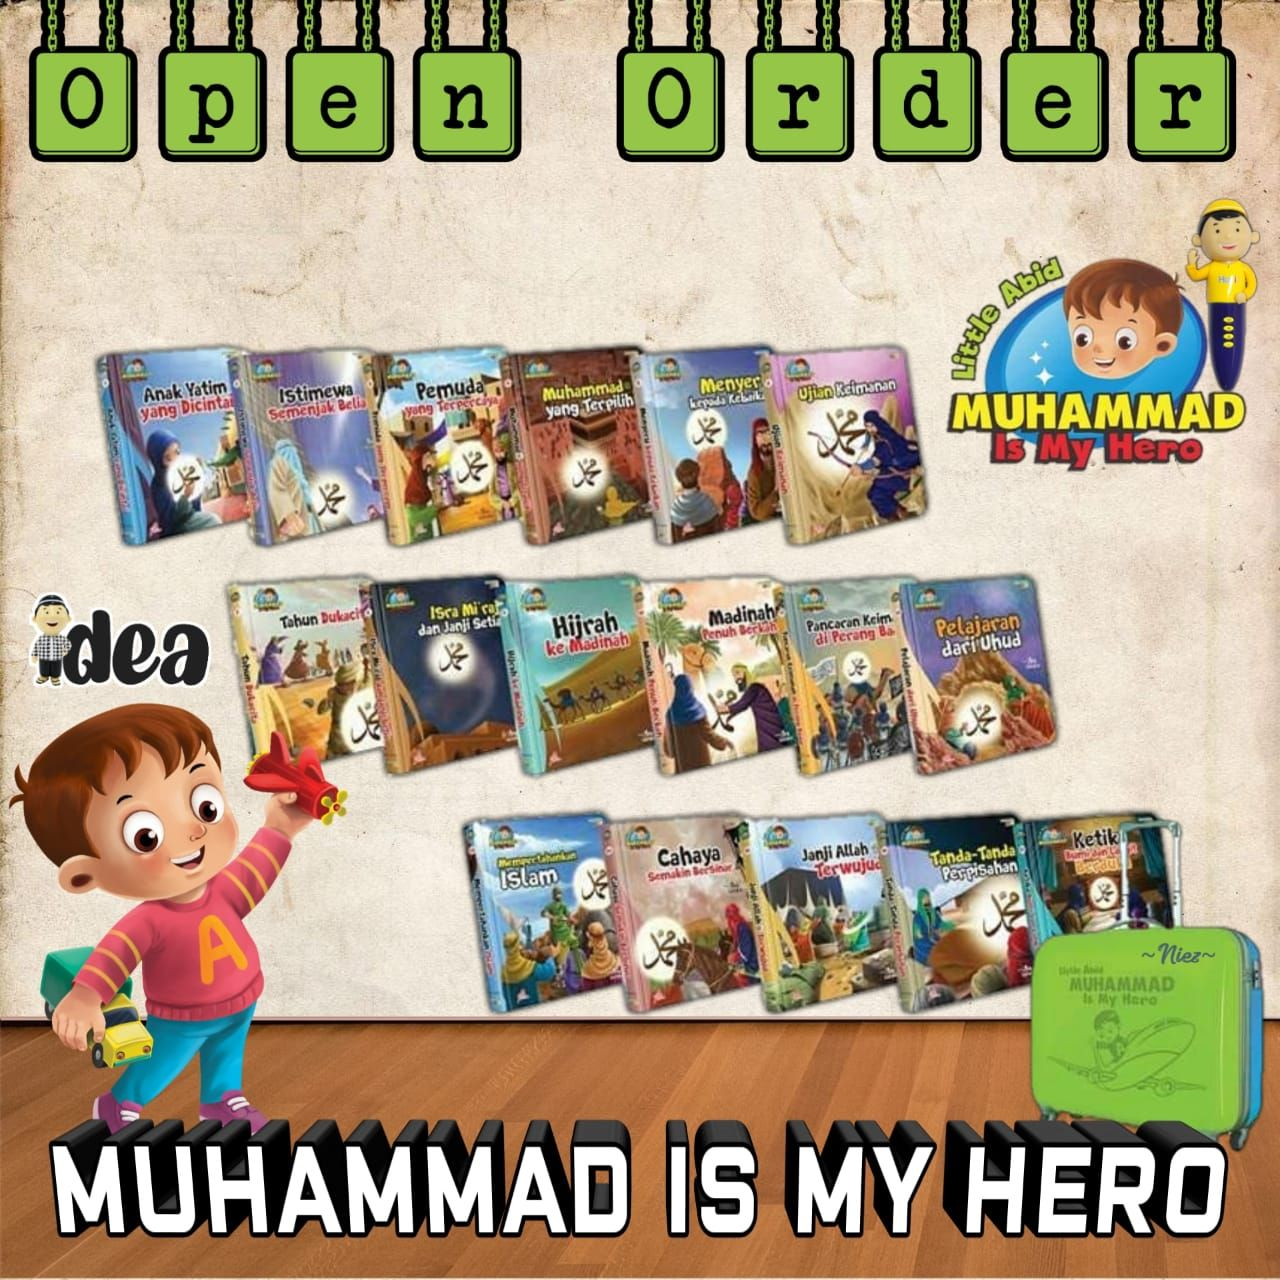 Muhammad is my hero